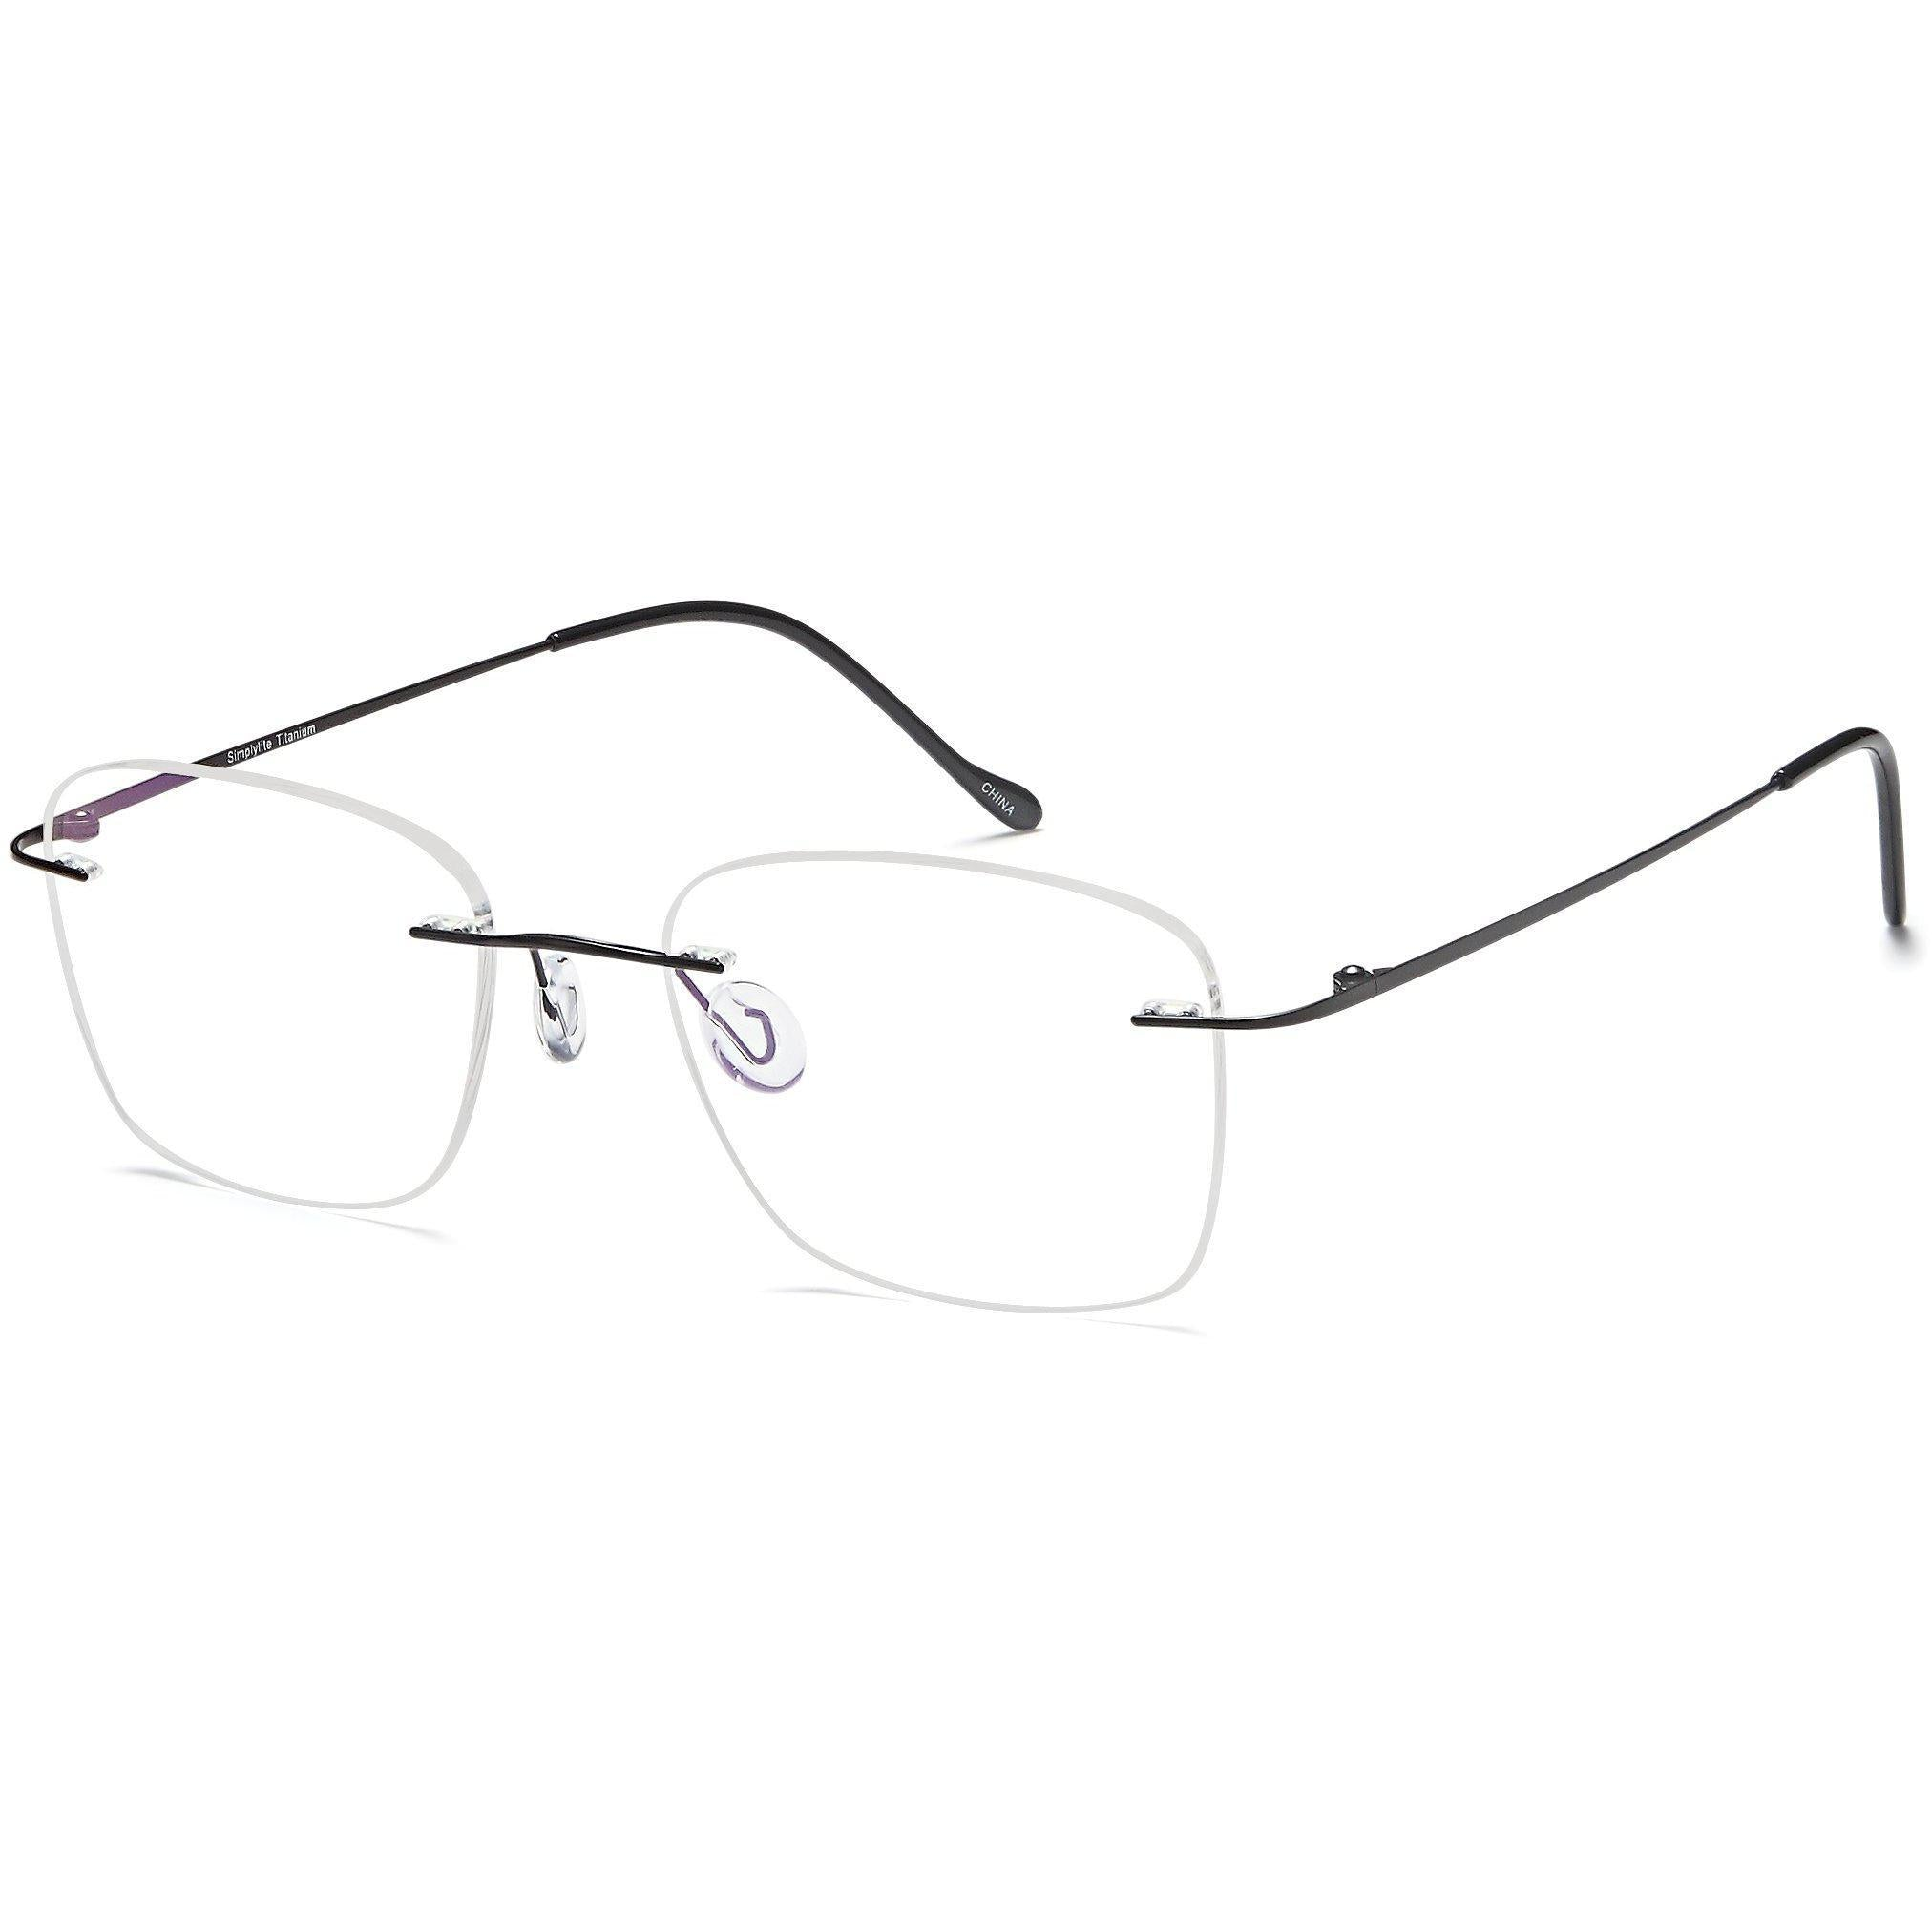 Feather Prescription Glasses SL 707 Eyeglasses Frames